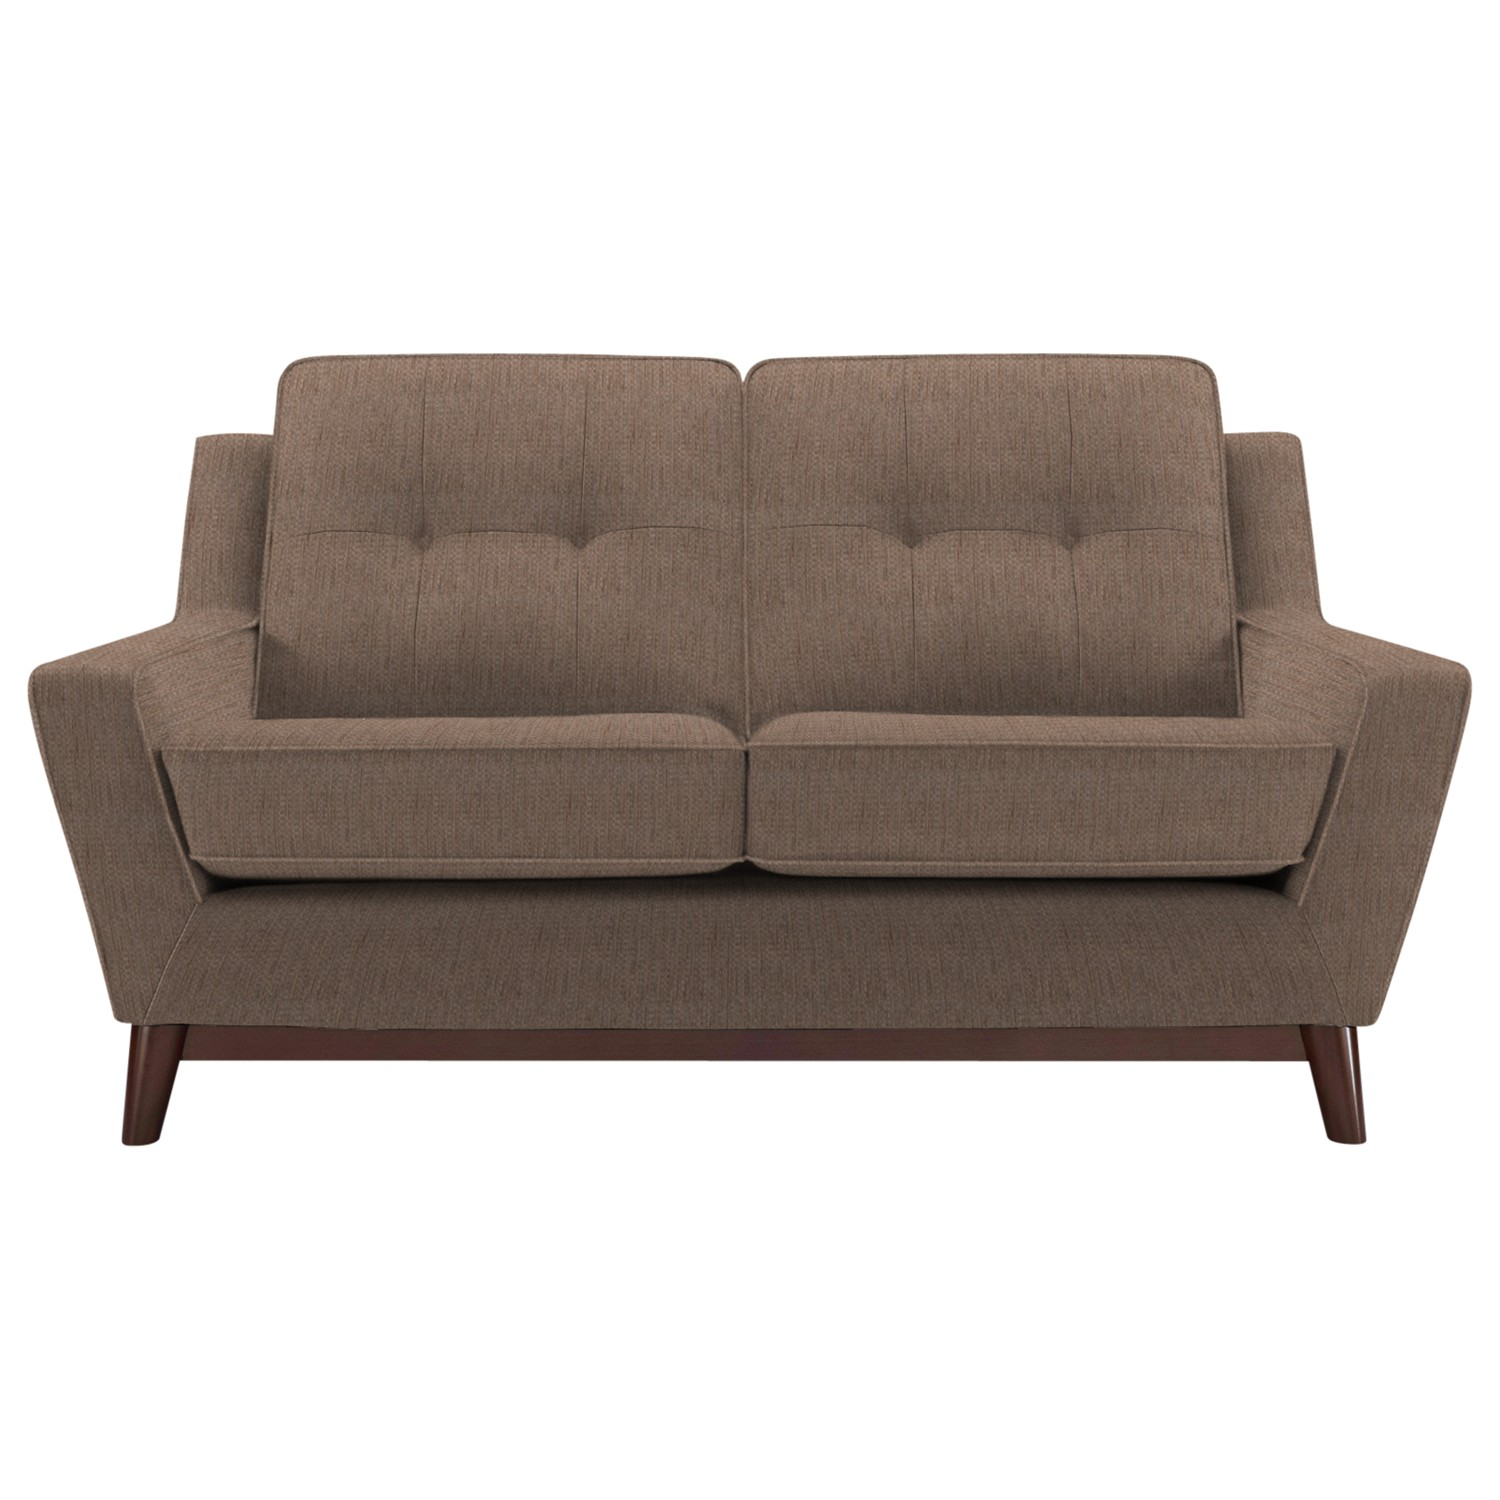 Where to place cute small couches for sale couch sofa for Couch furniture